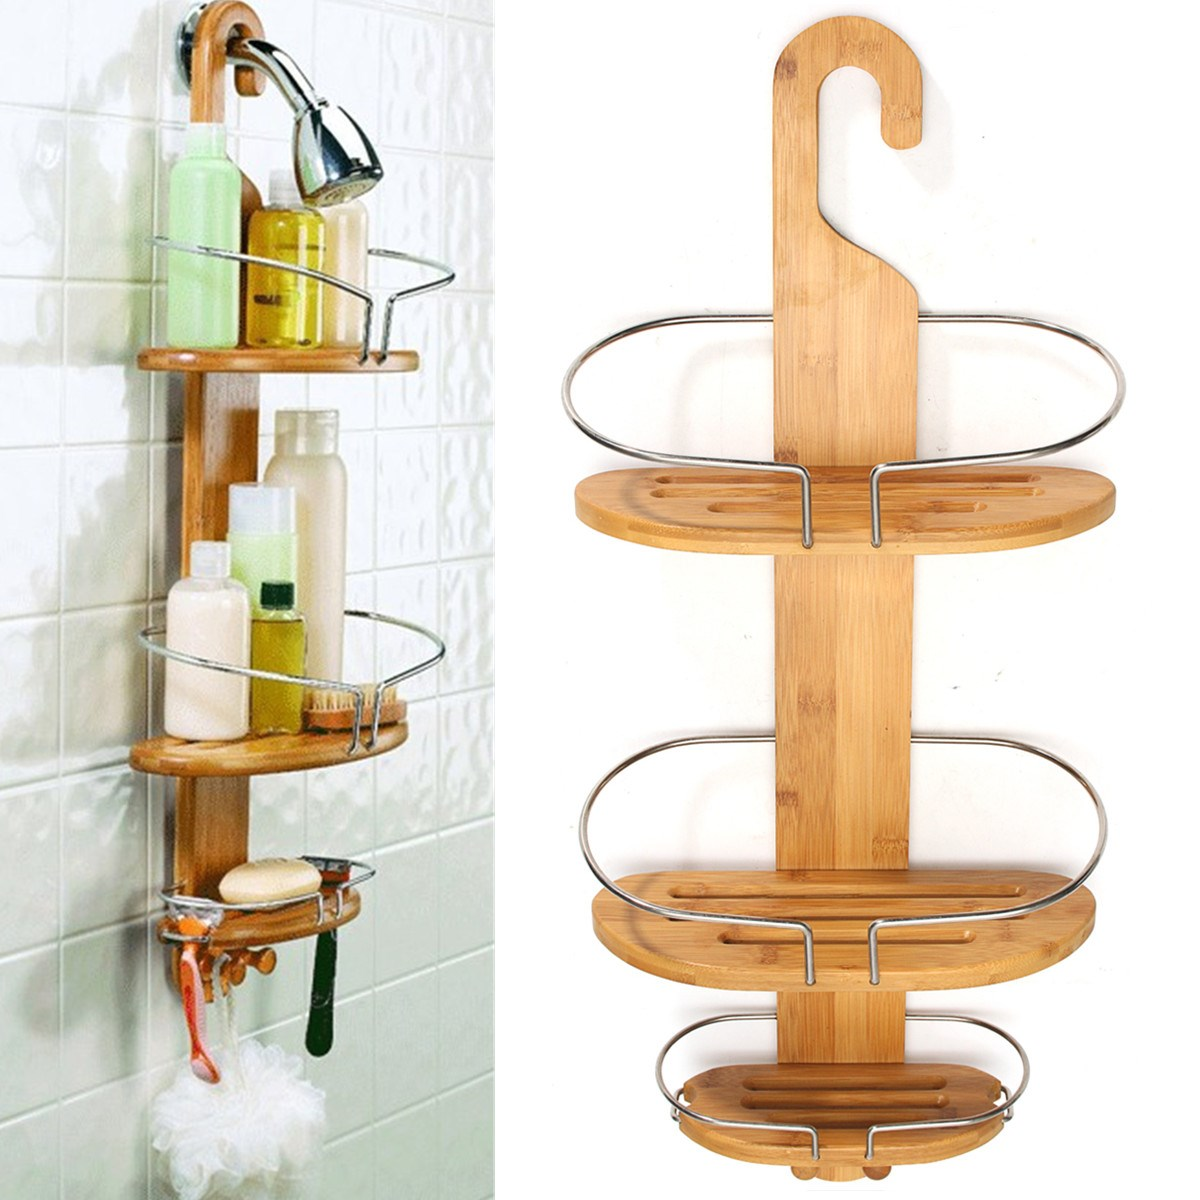 Wall shelf holder shower organiser vintage loft industrial for Bathroom accessories stand